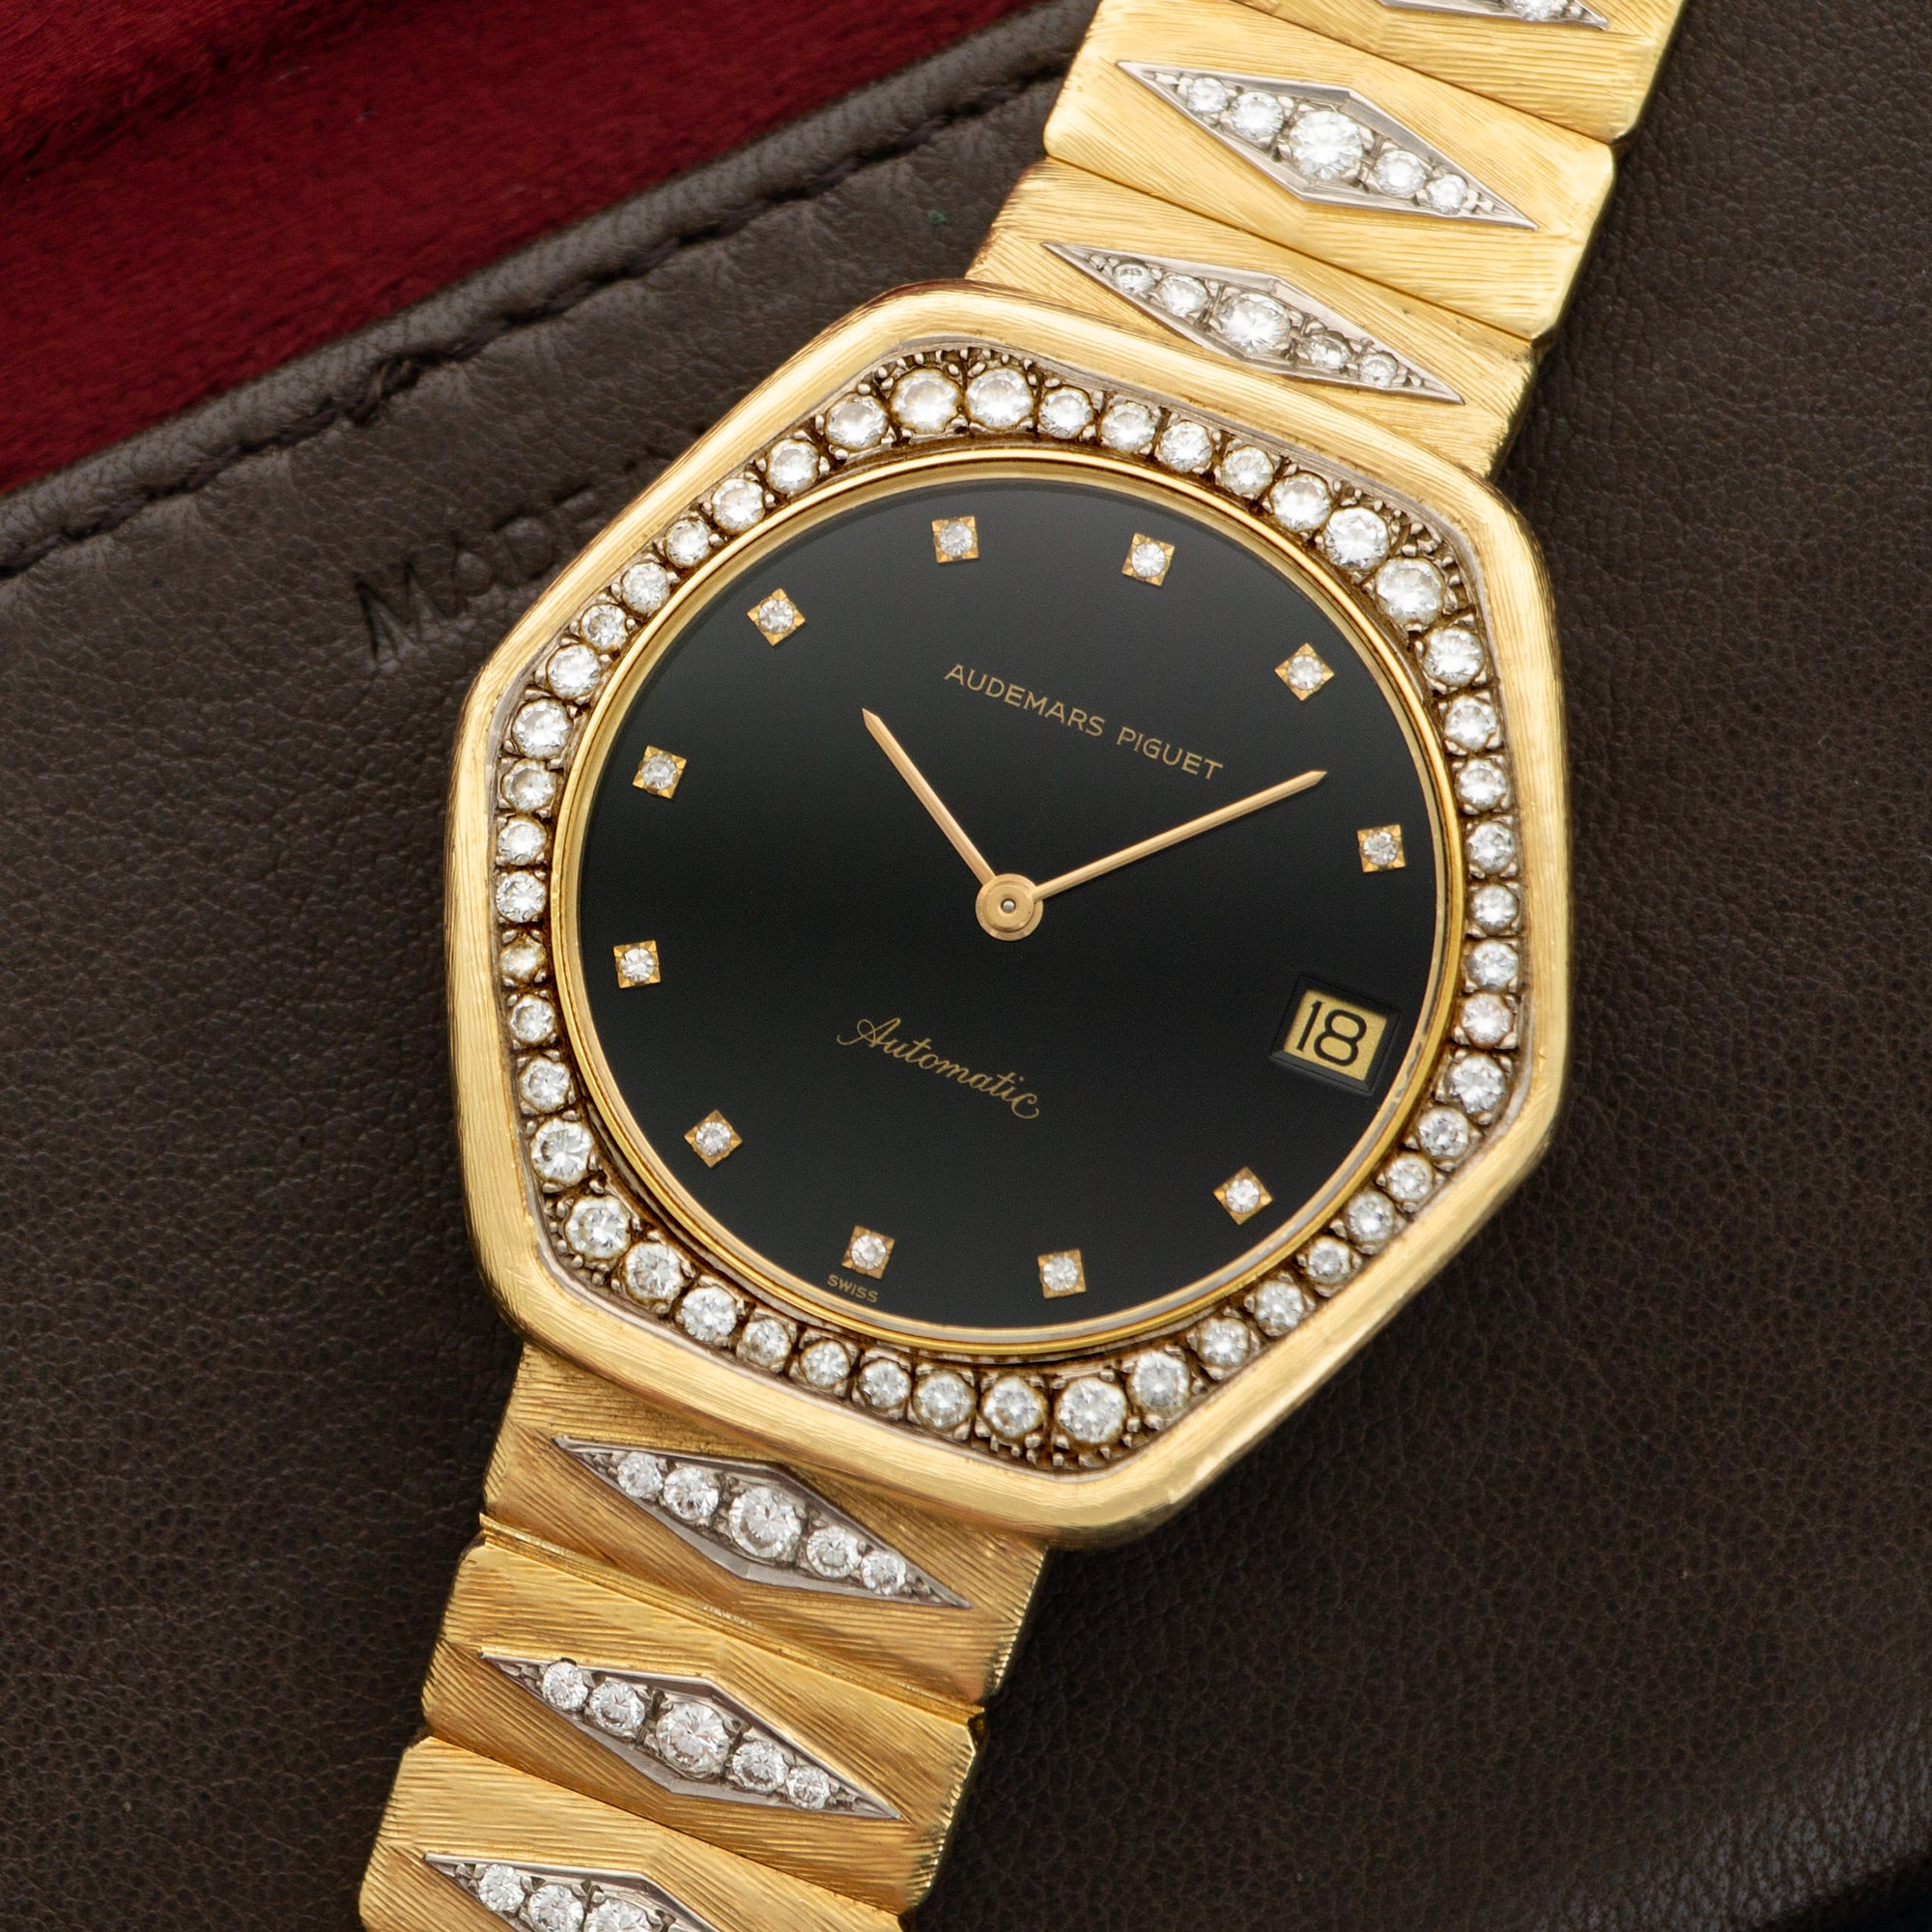 Audemars Piguet Vintage N/A 18k YG  Likely Never Polished, Original Finish Unisex 18k YG Black with Diamond Markers 37mm Automatic 1970s Yellow Gold with Diamonds Leather Travel Case